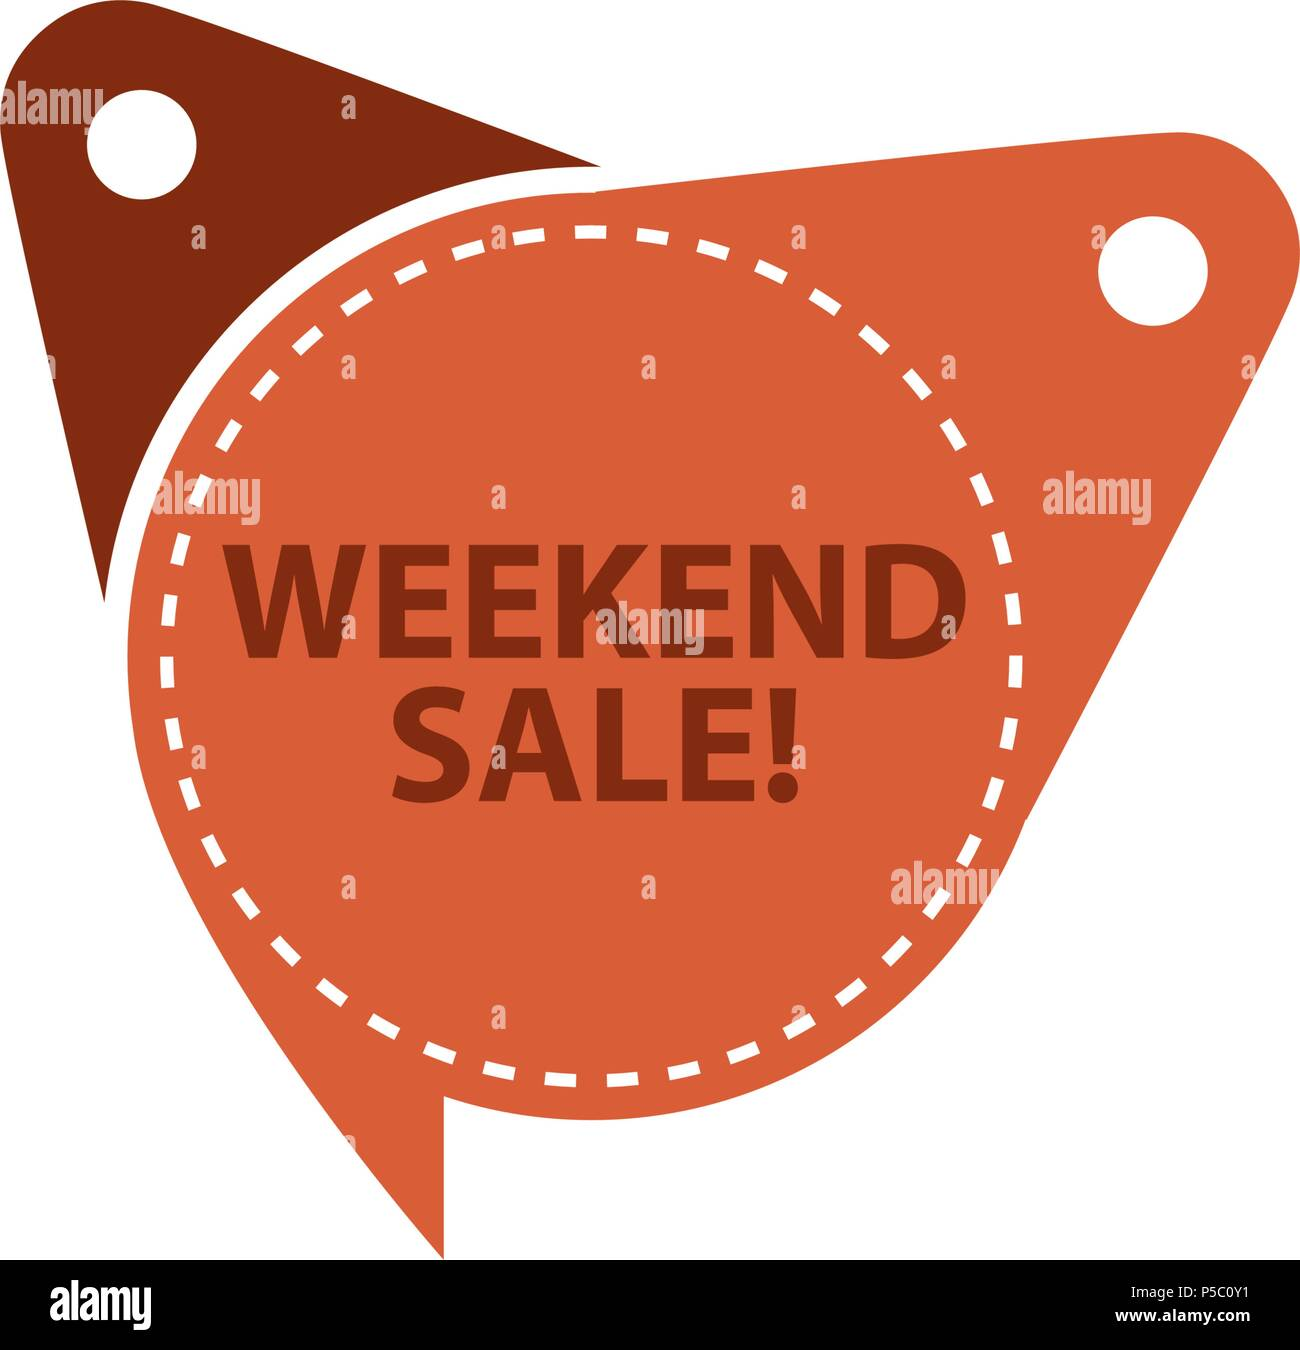 weekend sale tag template isolated stock vector art illustration